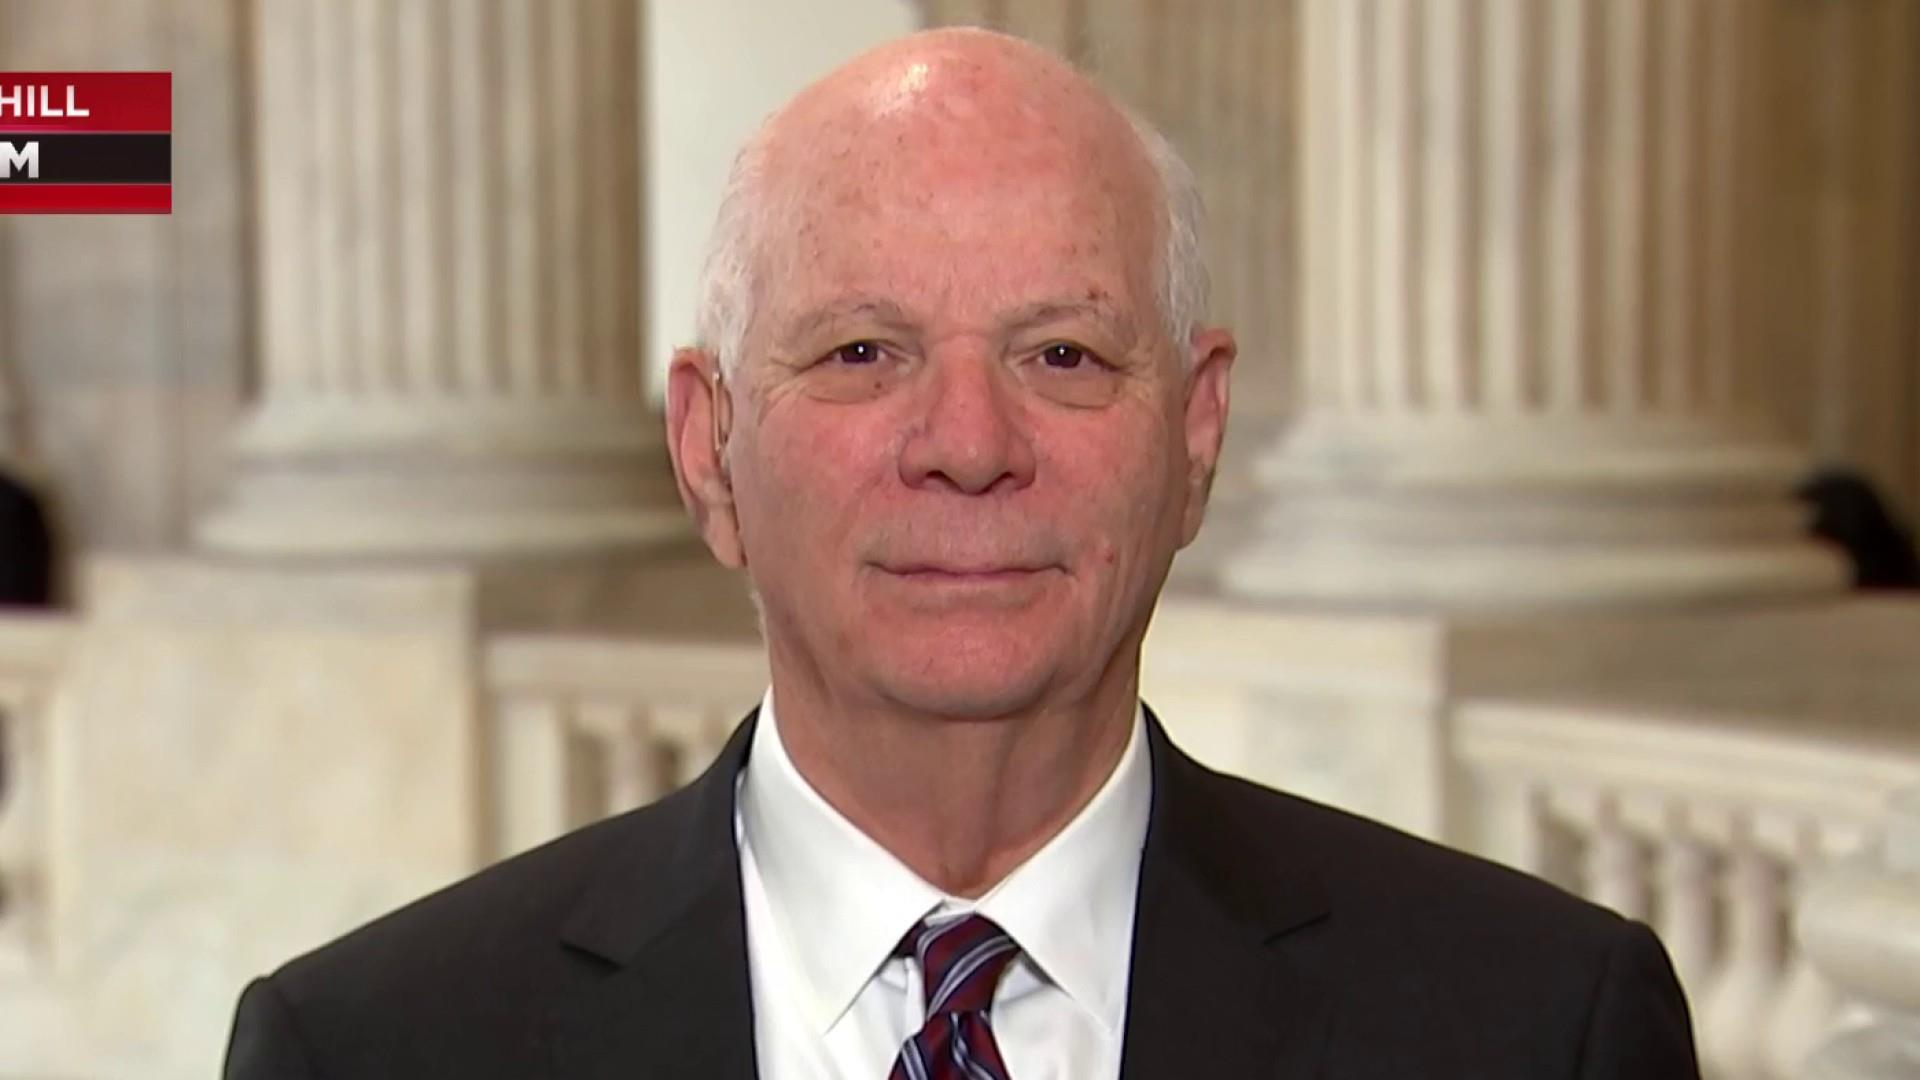 Sen. Cardin: 'There is not a military answer' for North Korea